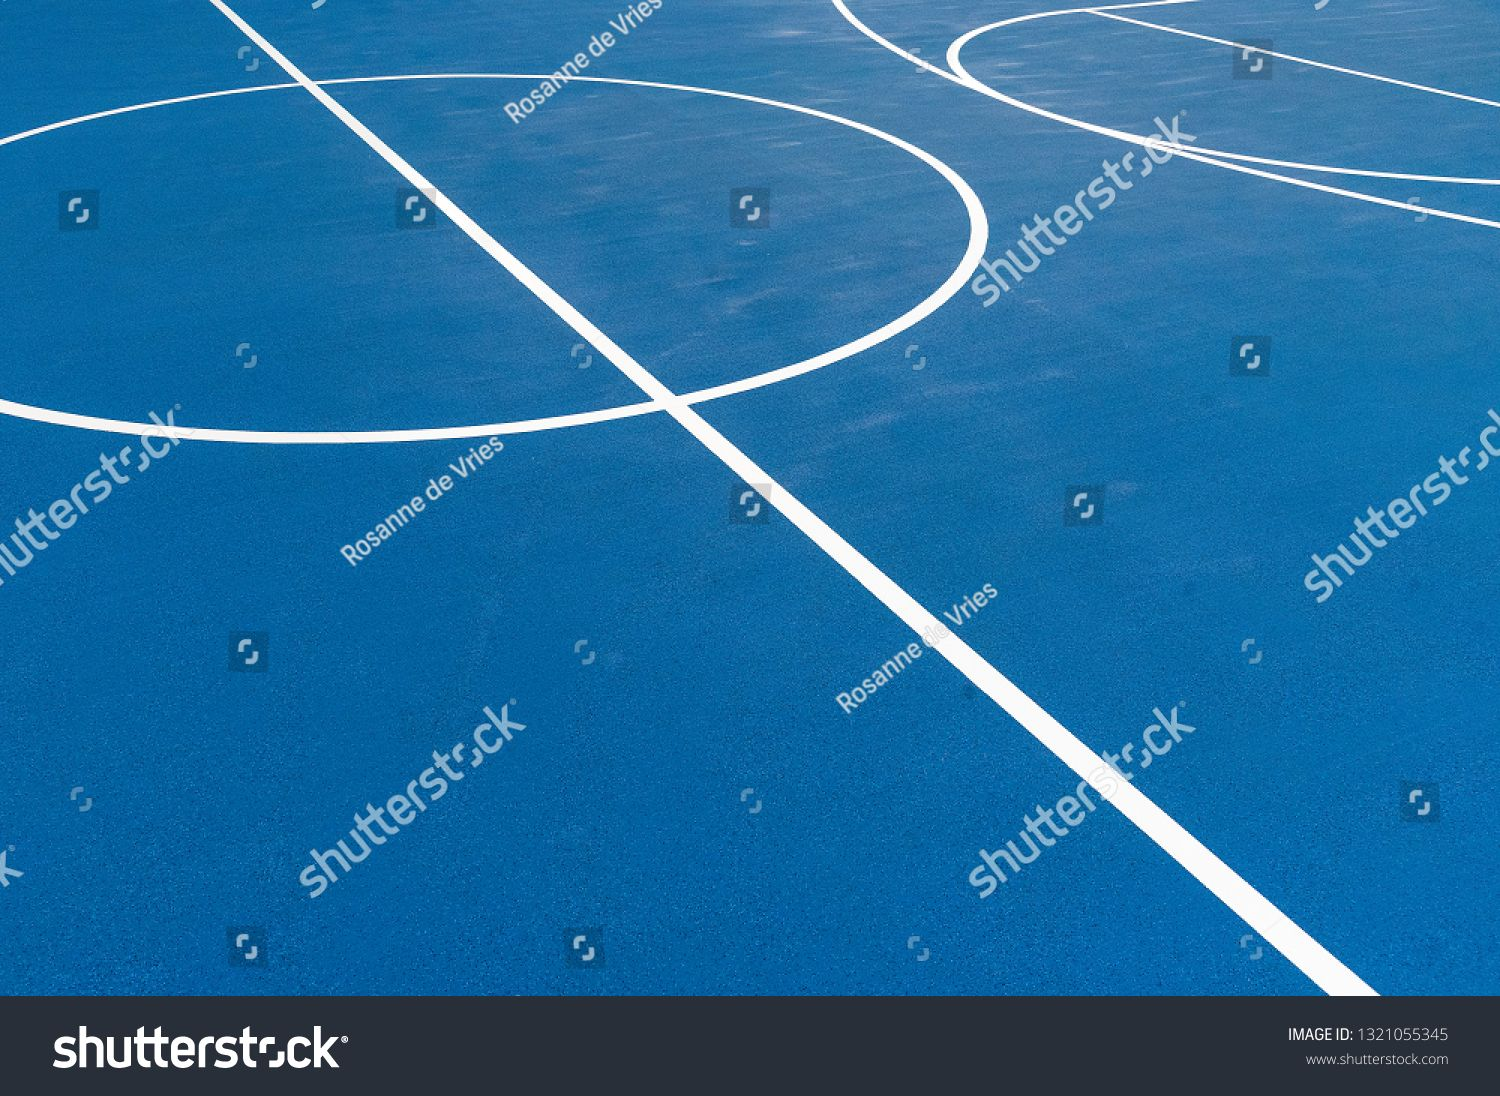 Blue Training field with white lines